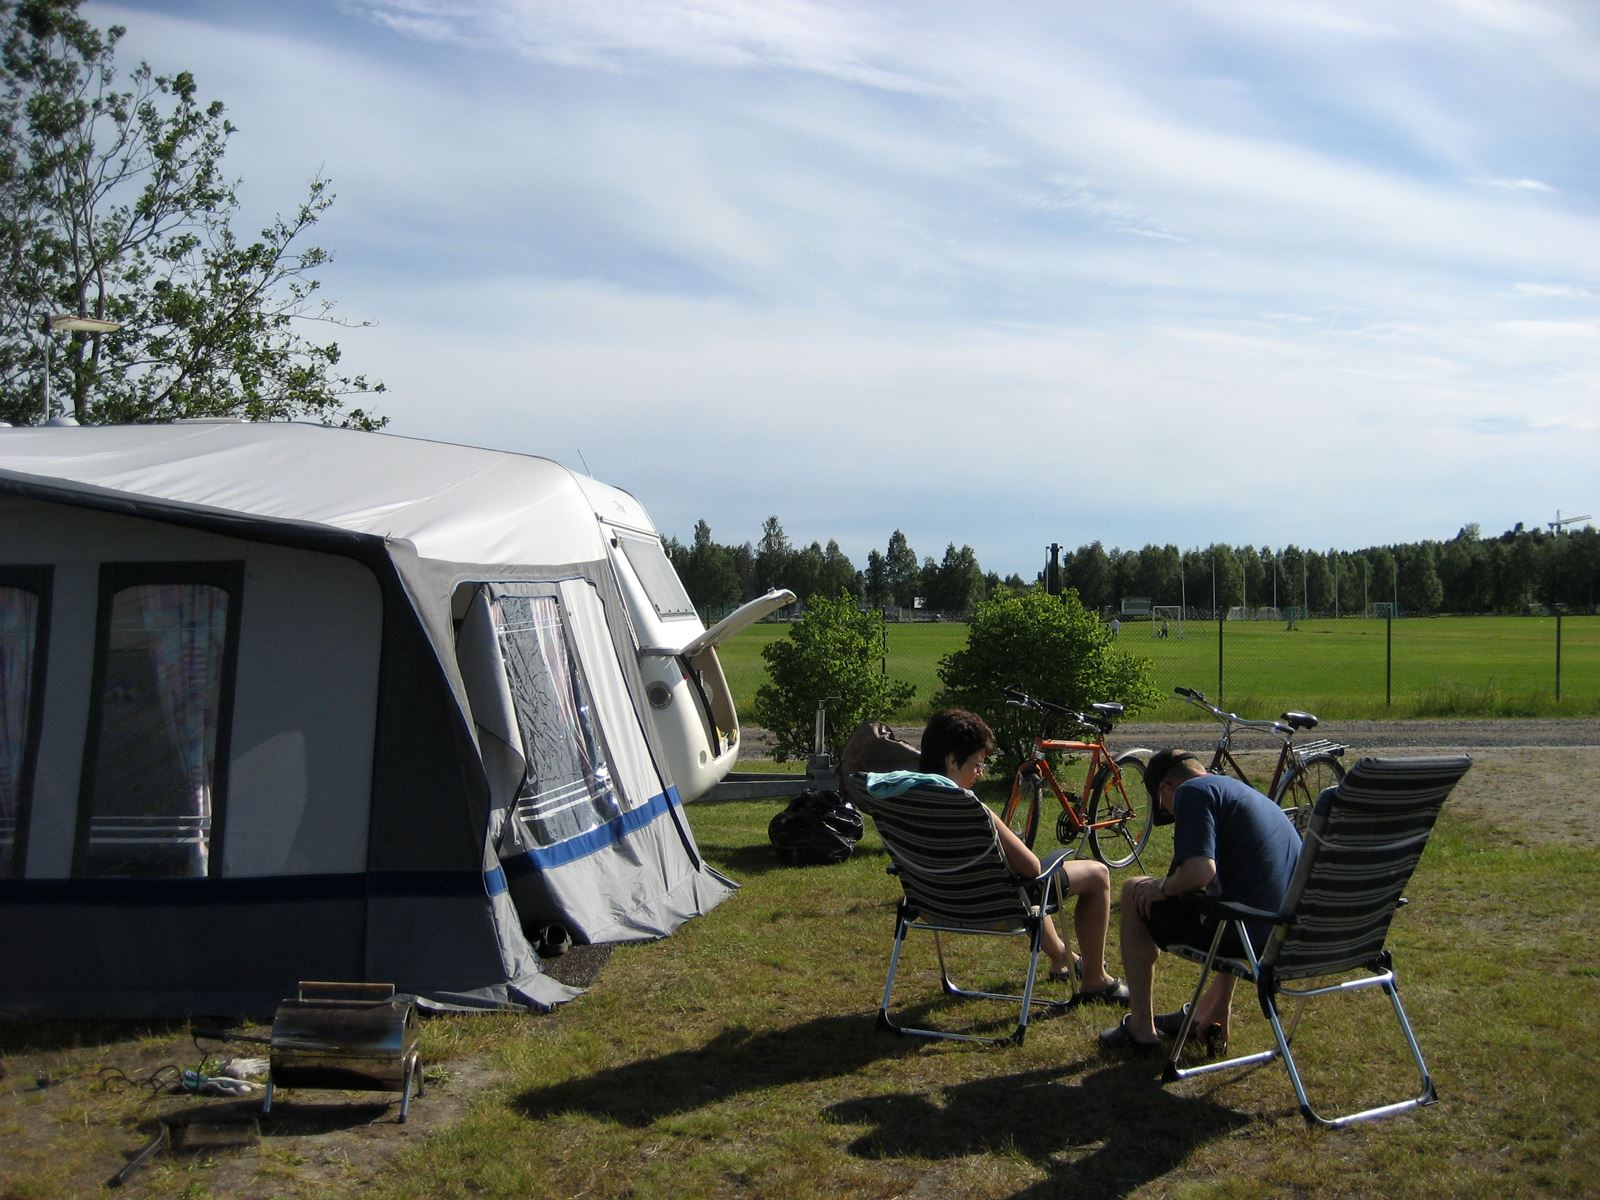 First Camp Umeå / Camping